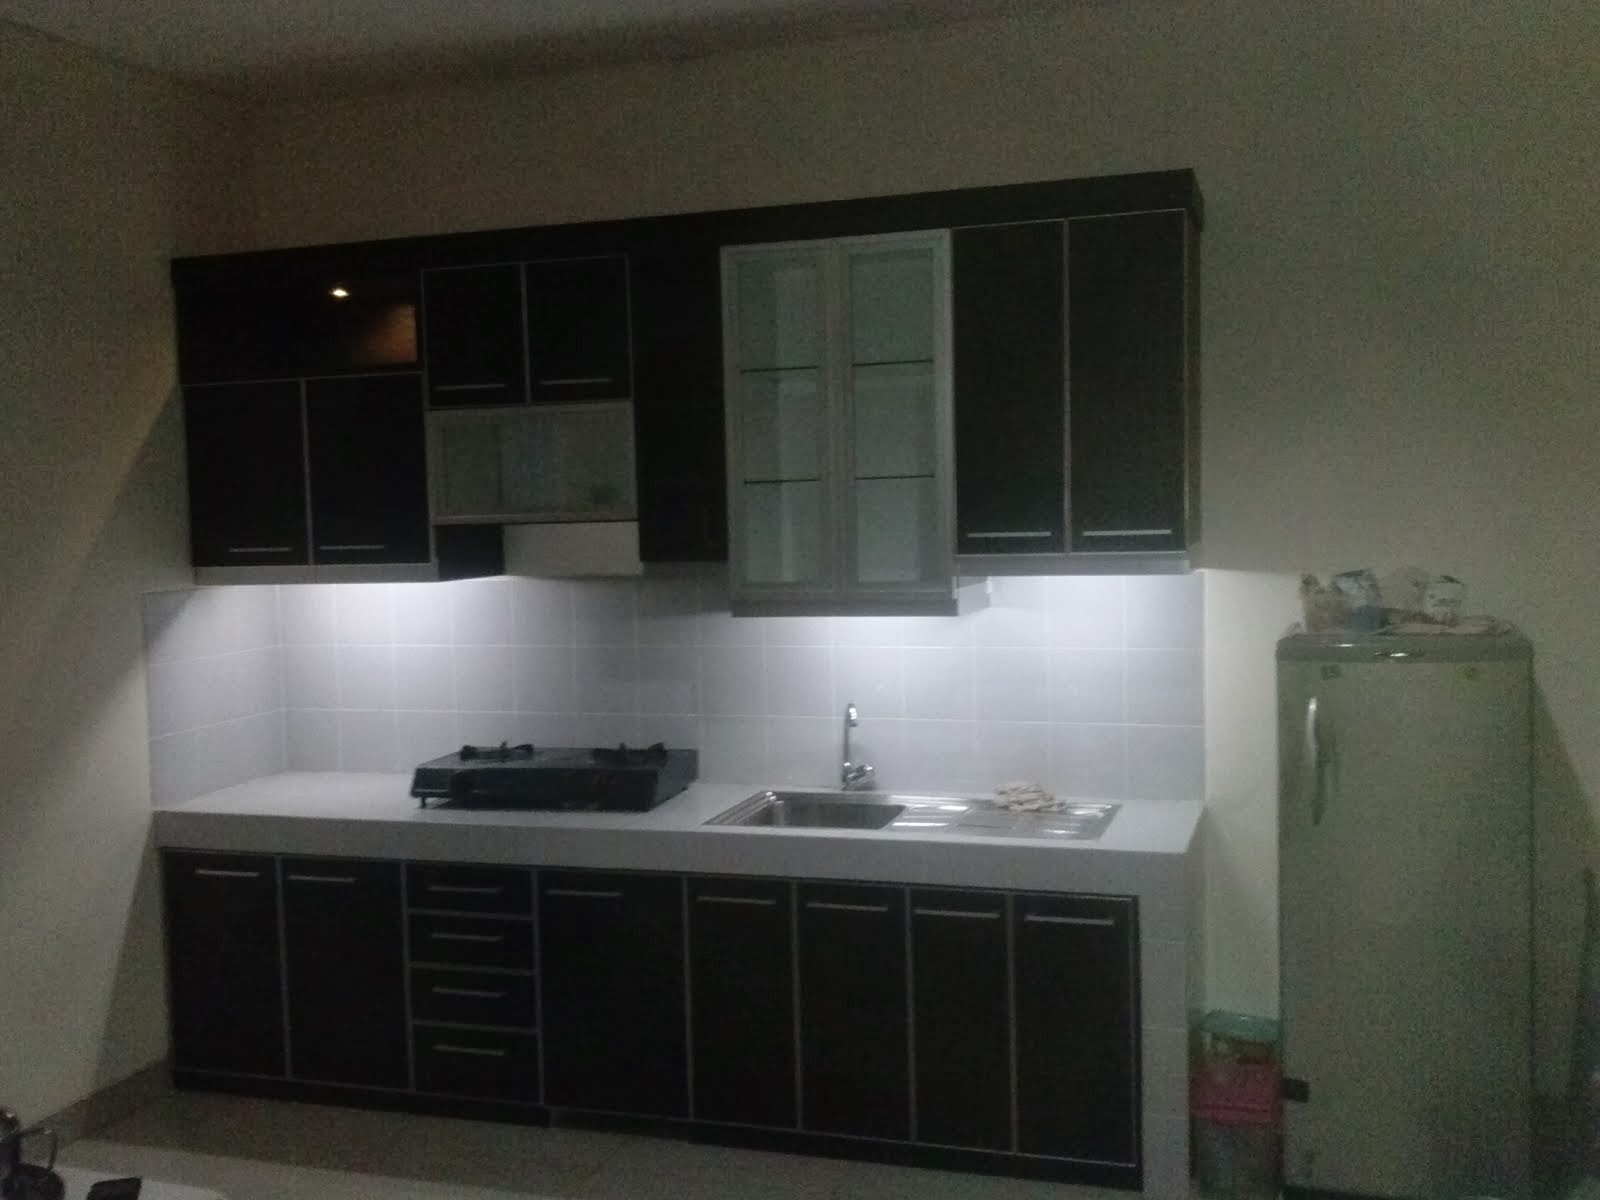 Kitchen set Ciganjur mas Bayu